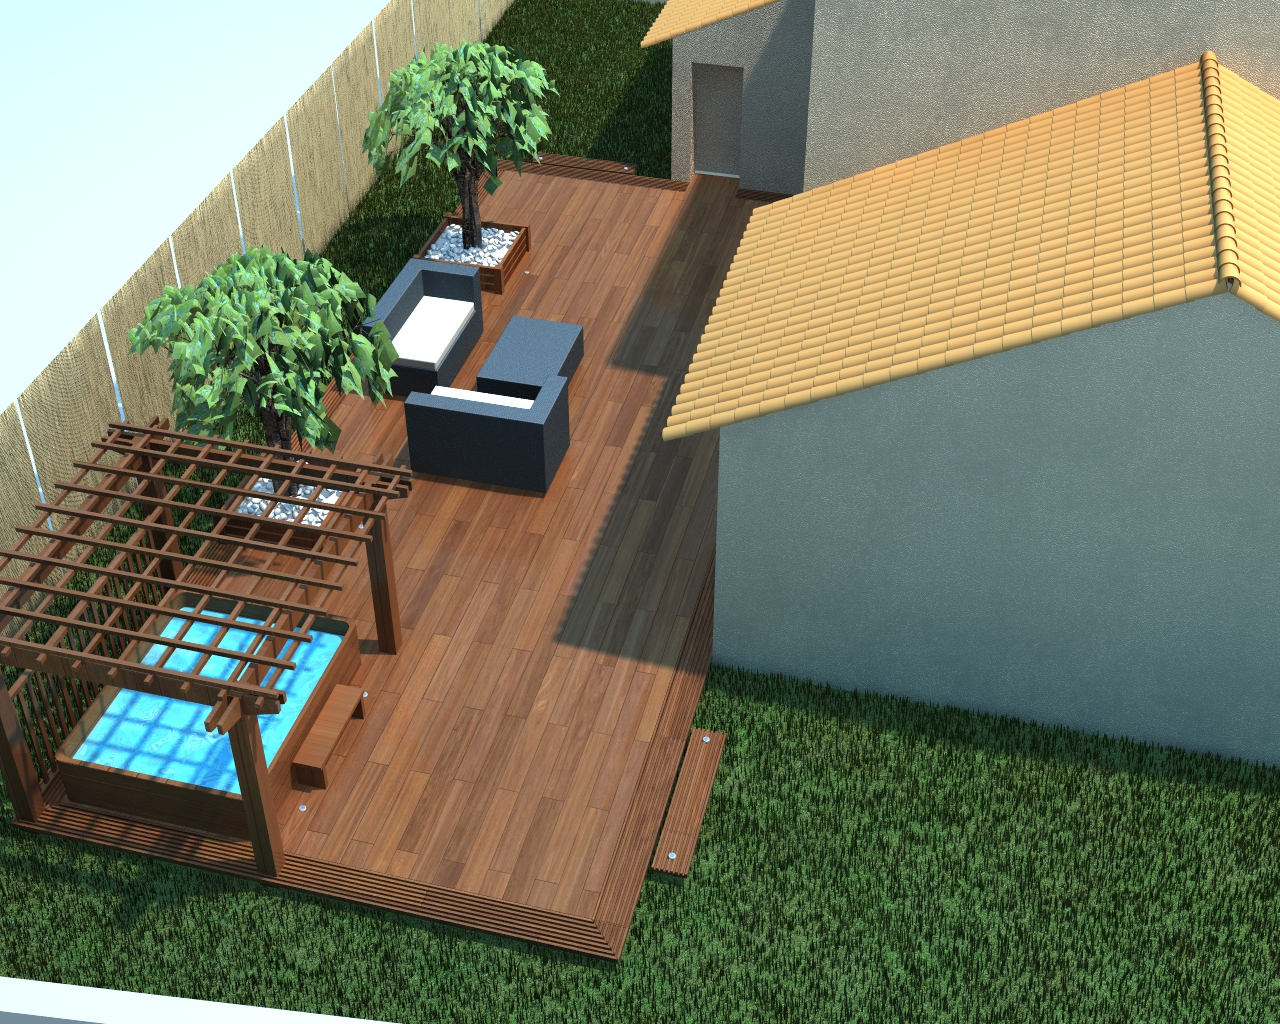 Conception terrasse et am nagement spa et salon de jardin for Amenagement terrasse et jardin